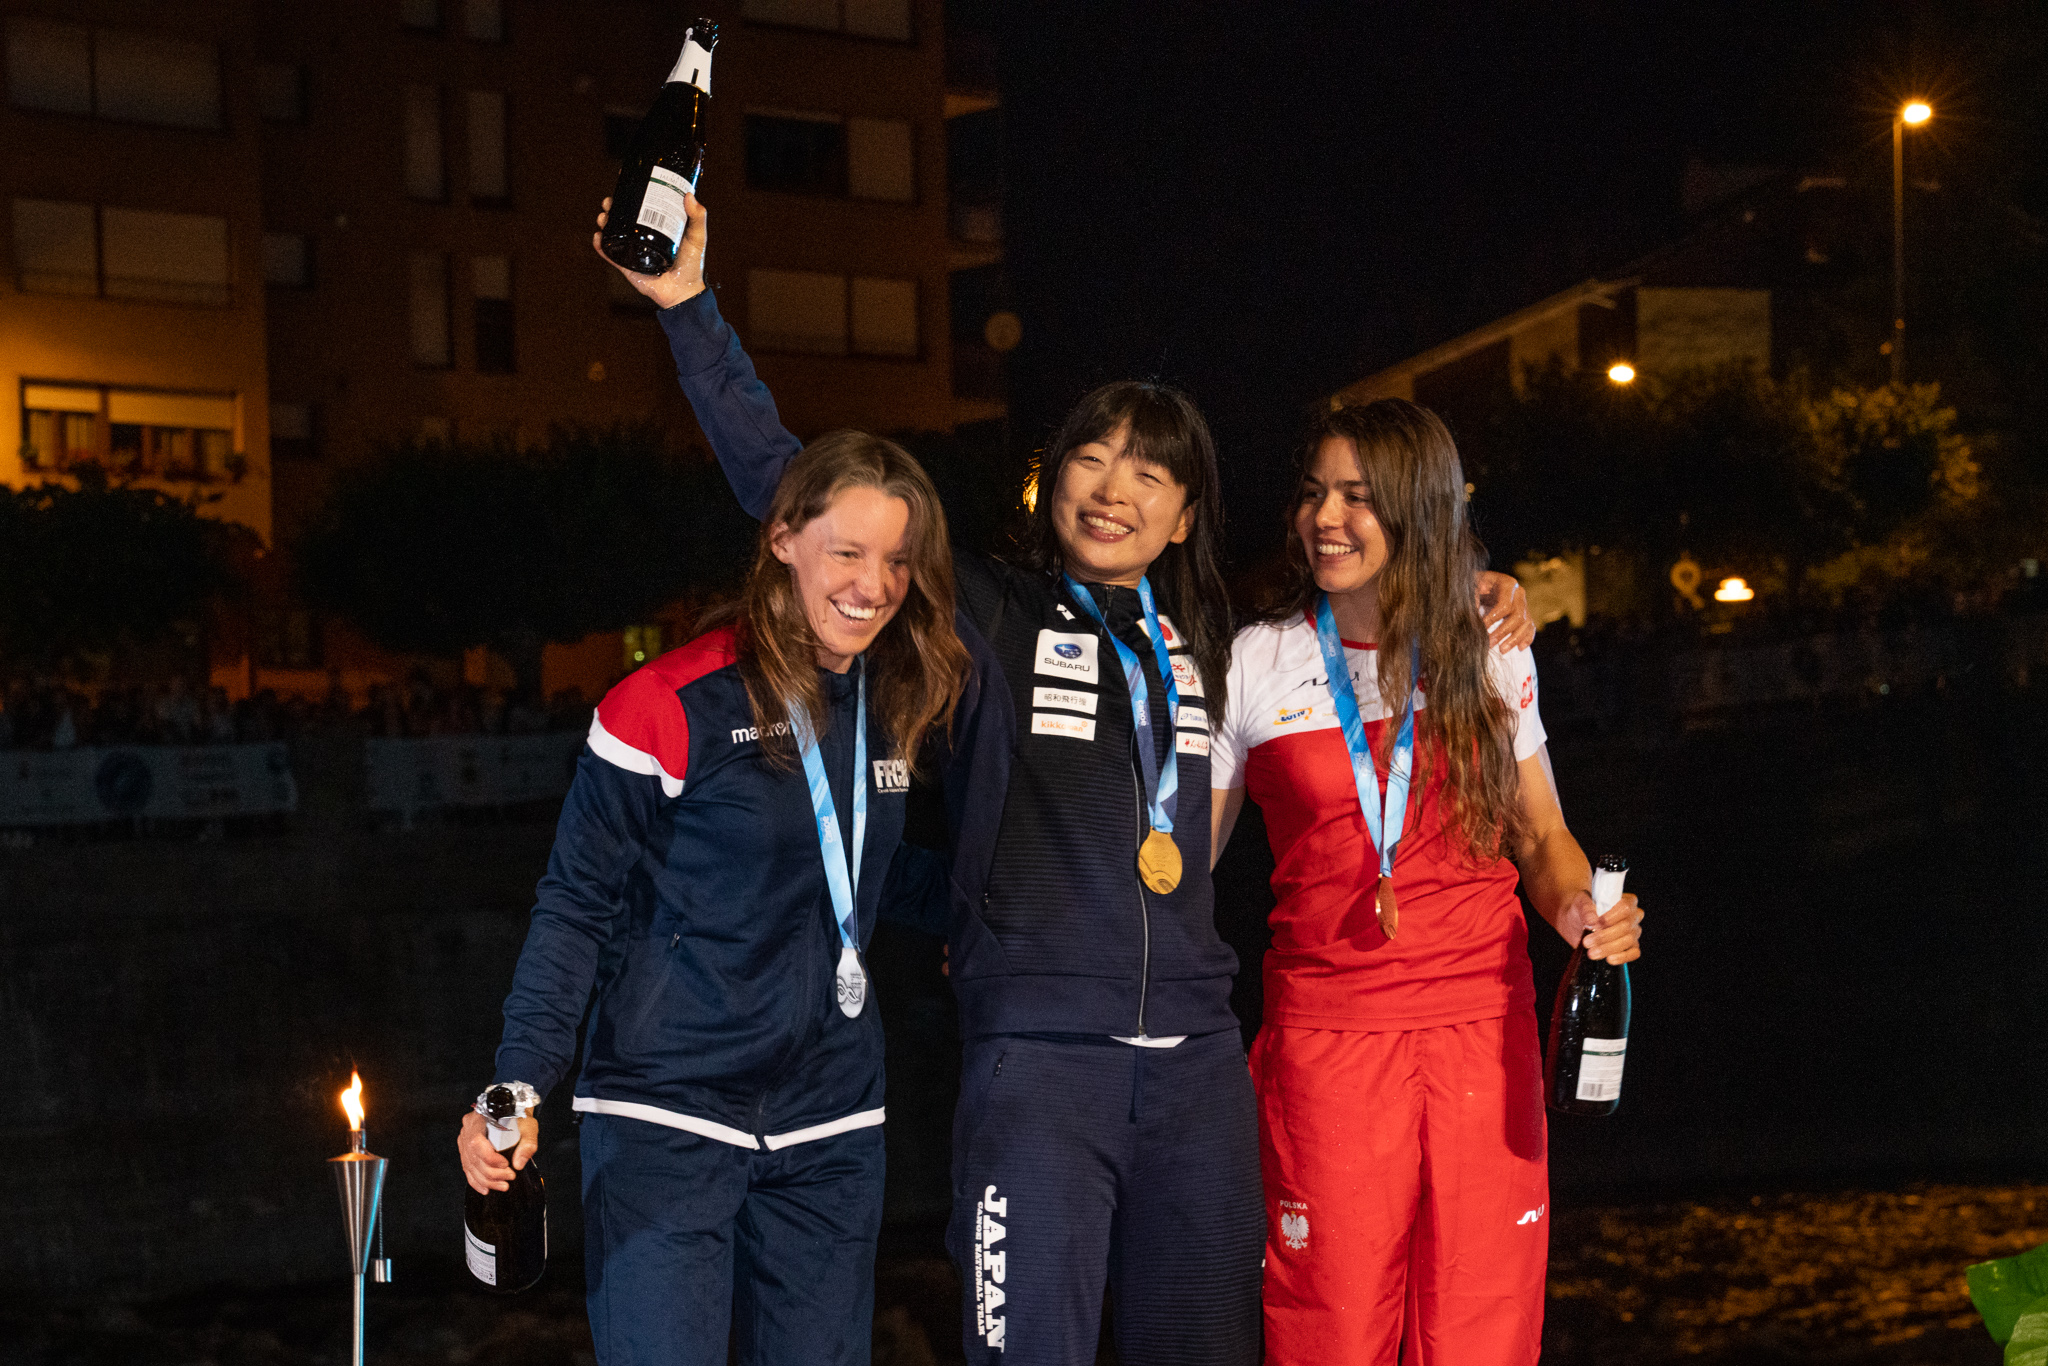 Women's Podium - Marlene Devillez (France), Hitomi Takaku (Japan) and Zofia Tula (Poland)©Peter Holcombe: kayaksession.com